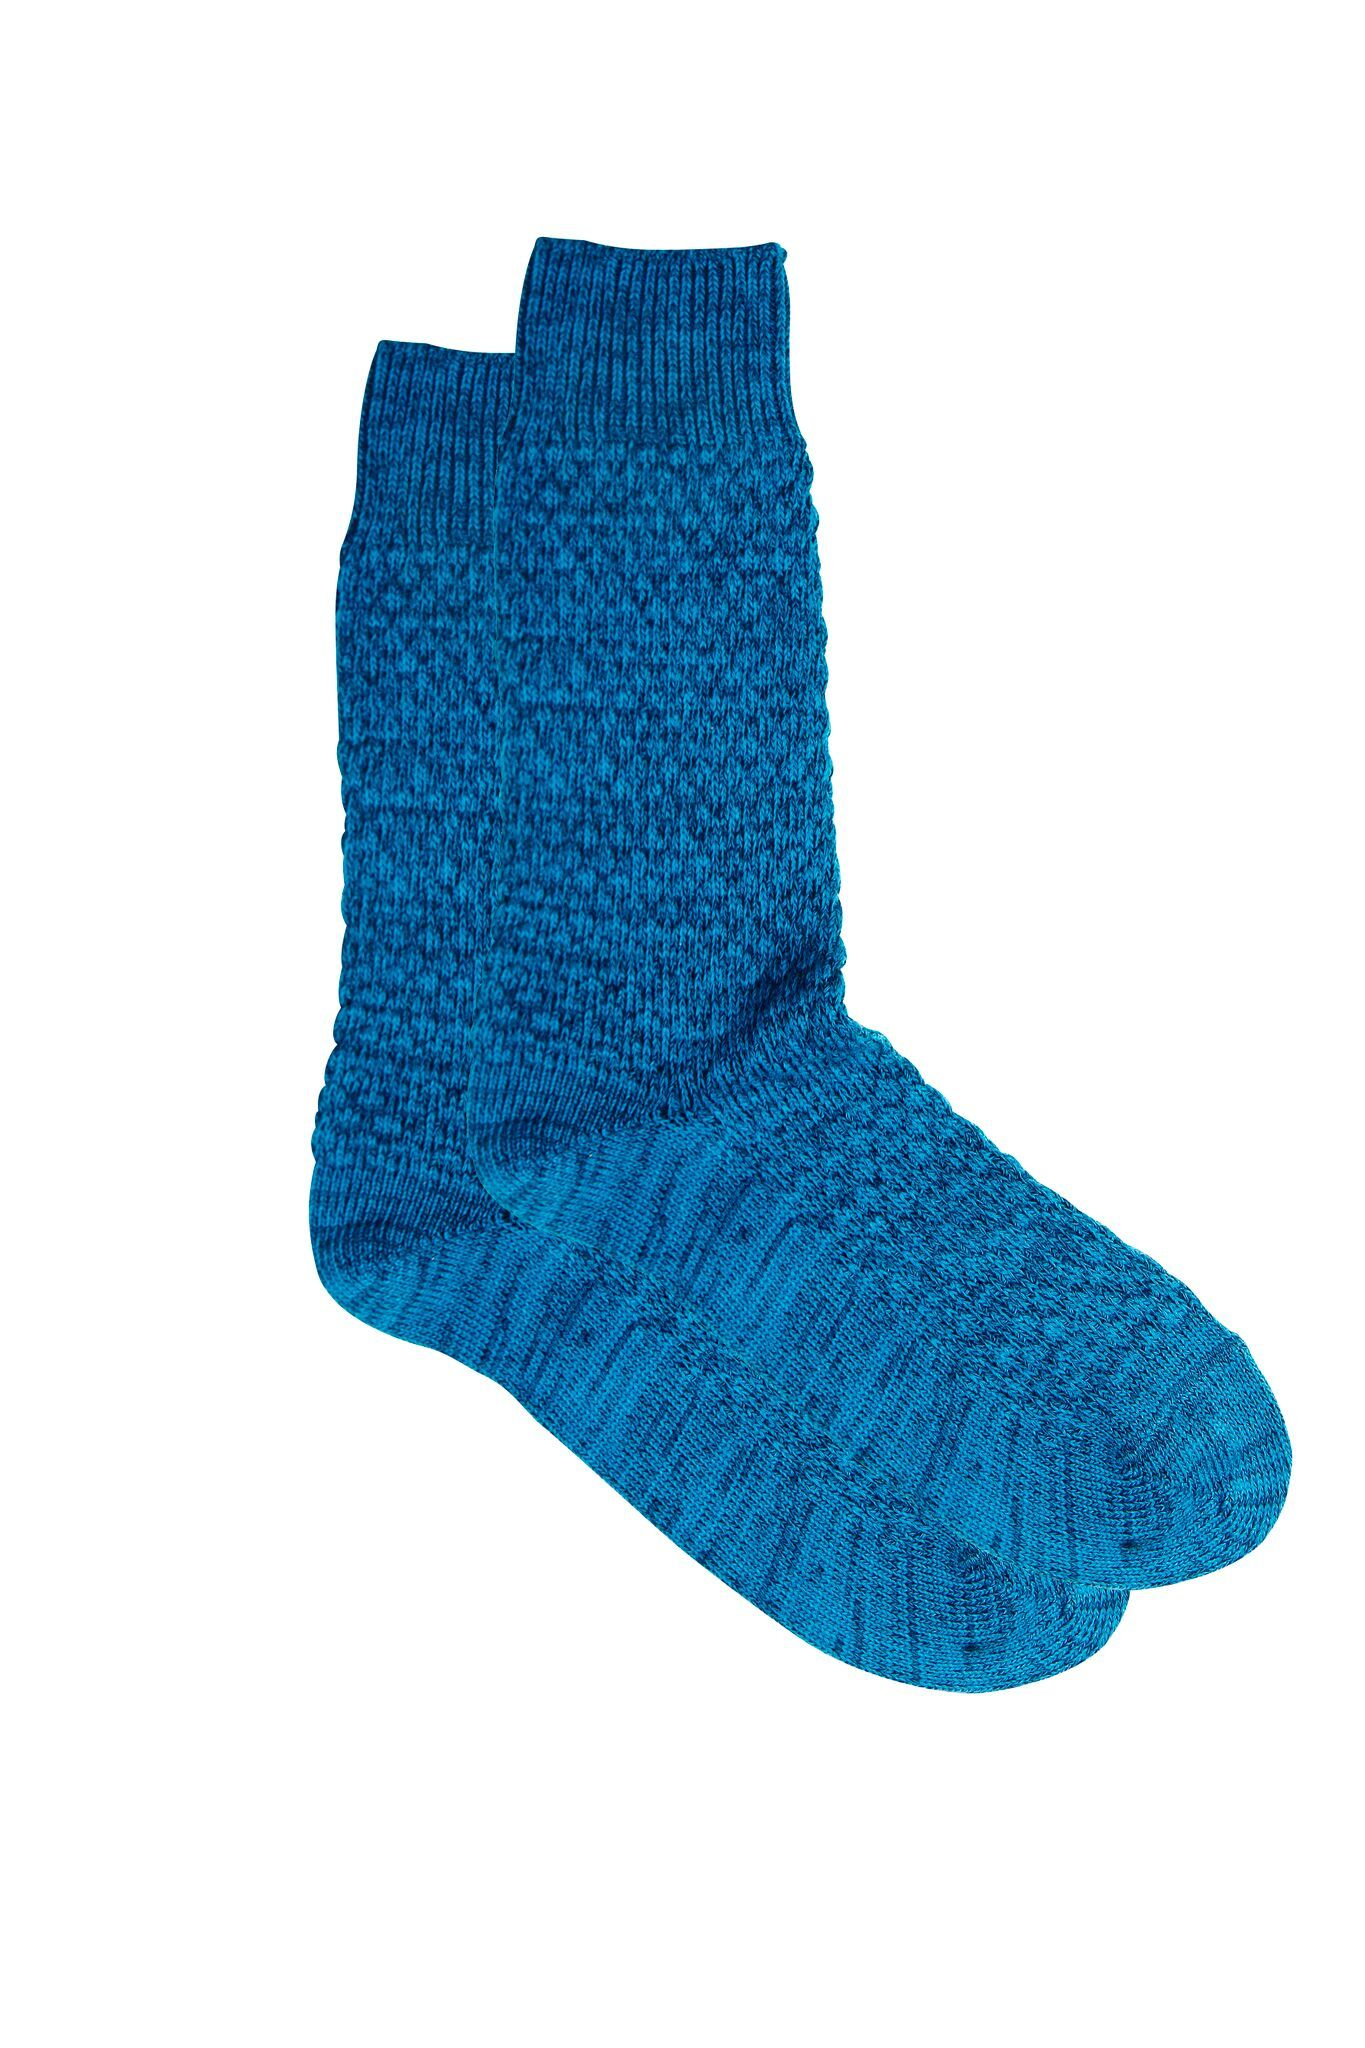 Oscar Sock Blue Sock MP Crafted Garments - der ZEITGEIST